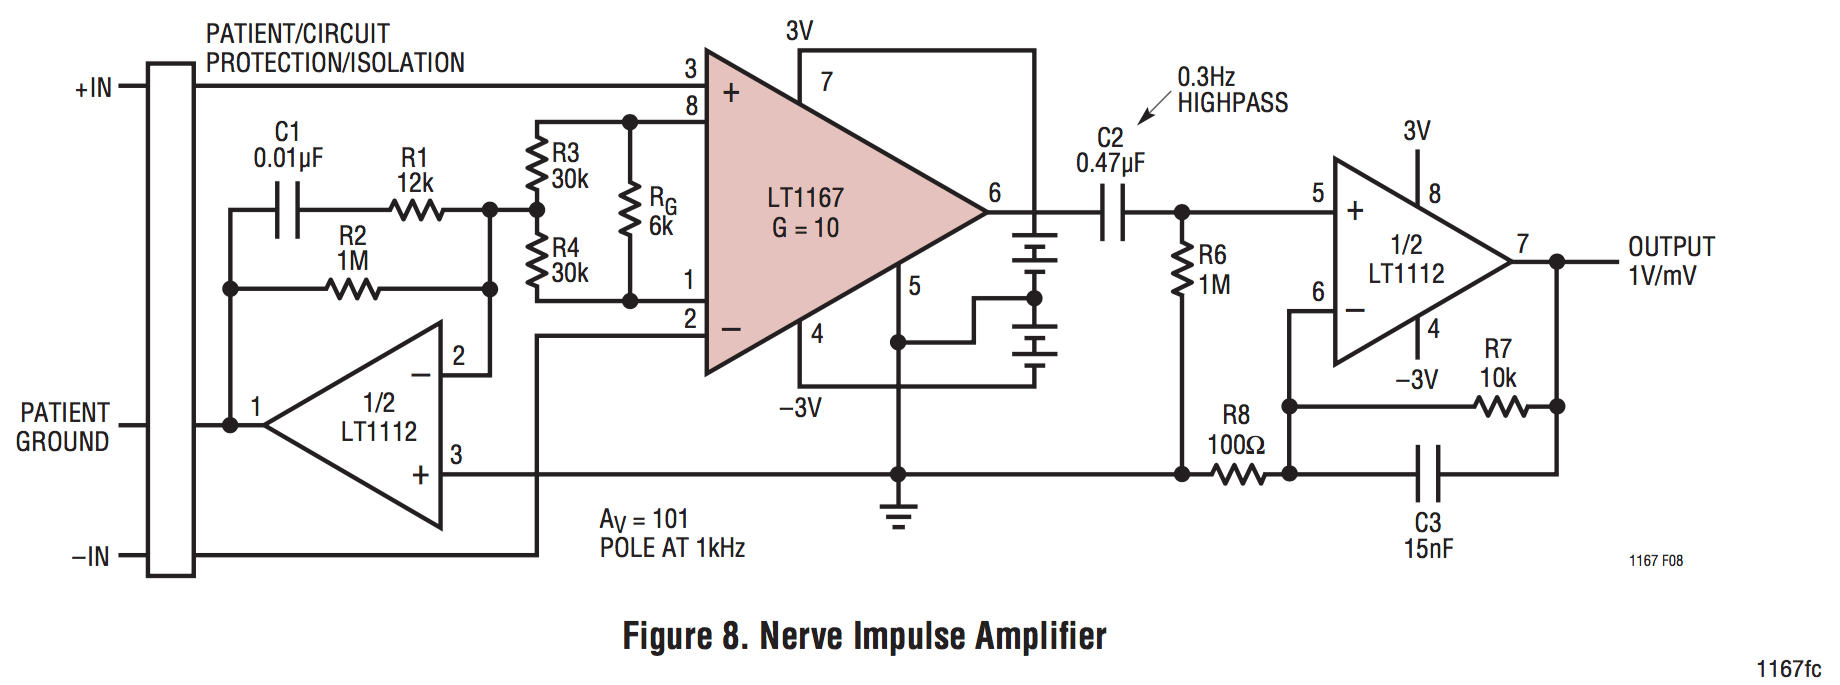 Build an EMG Audio Amplifier! (Electromyography) : 8 Steps